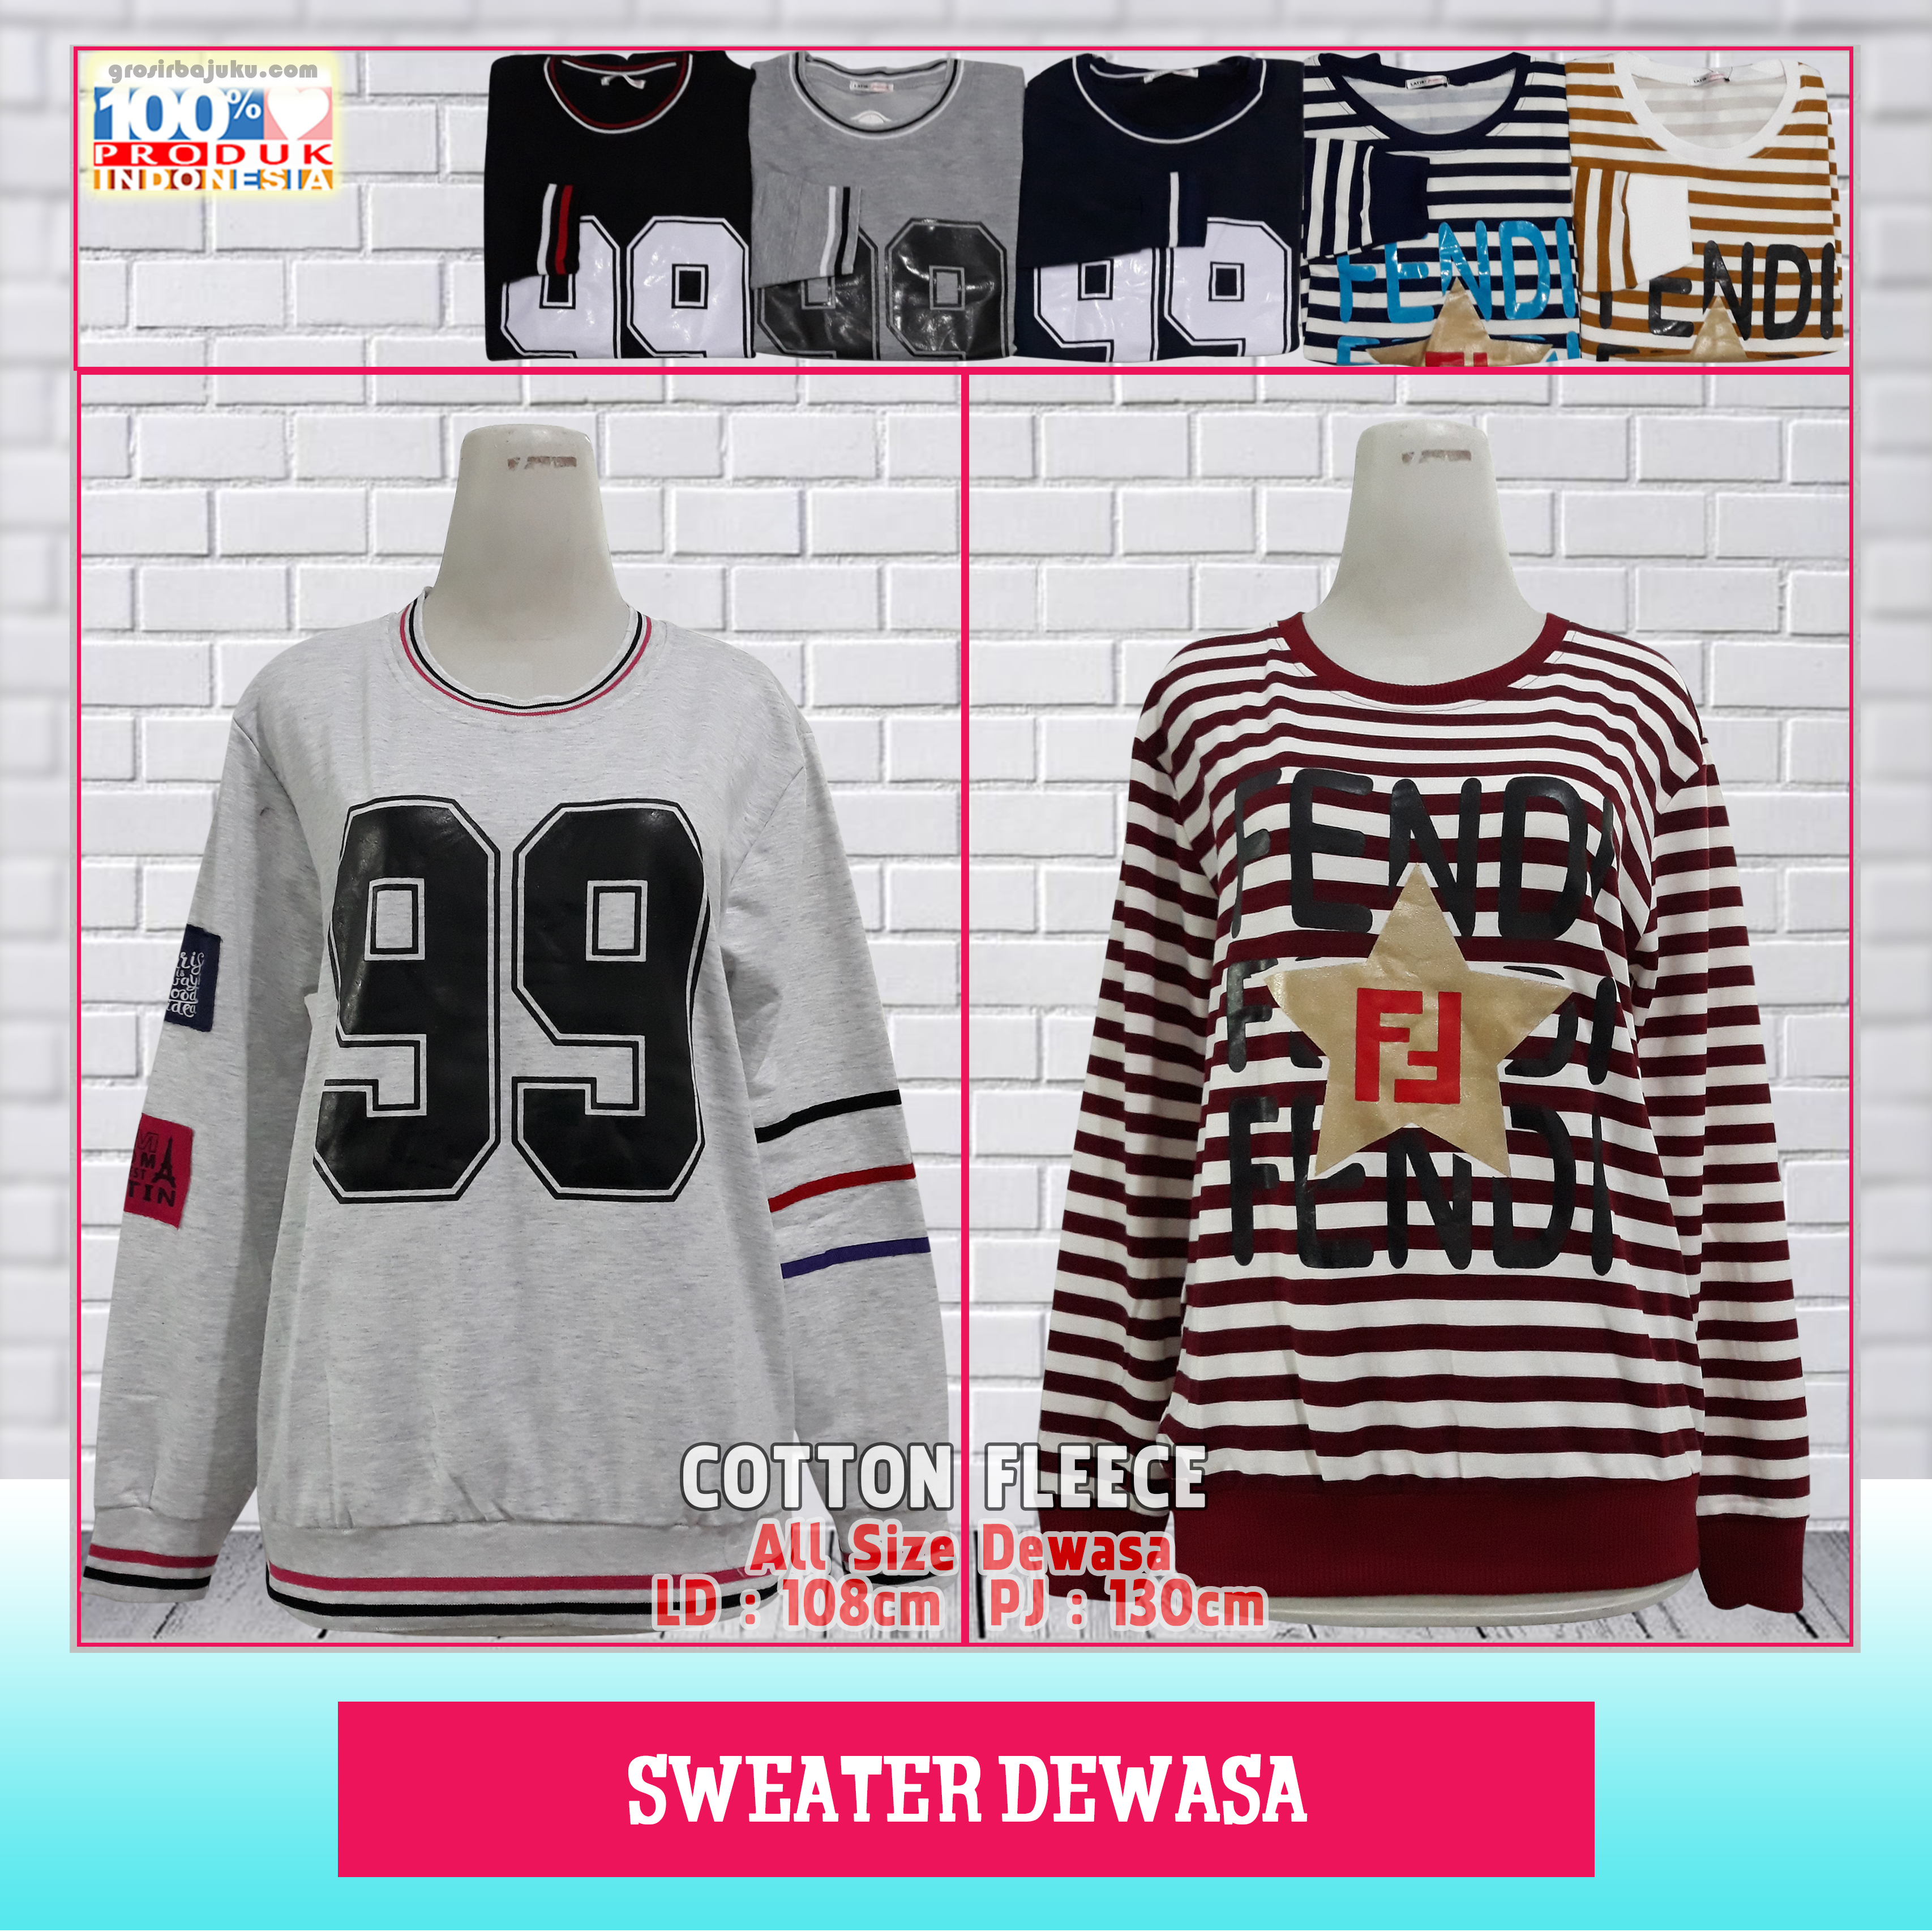 Sweater Dewasa